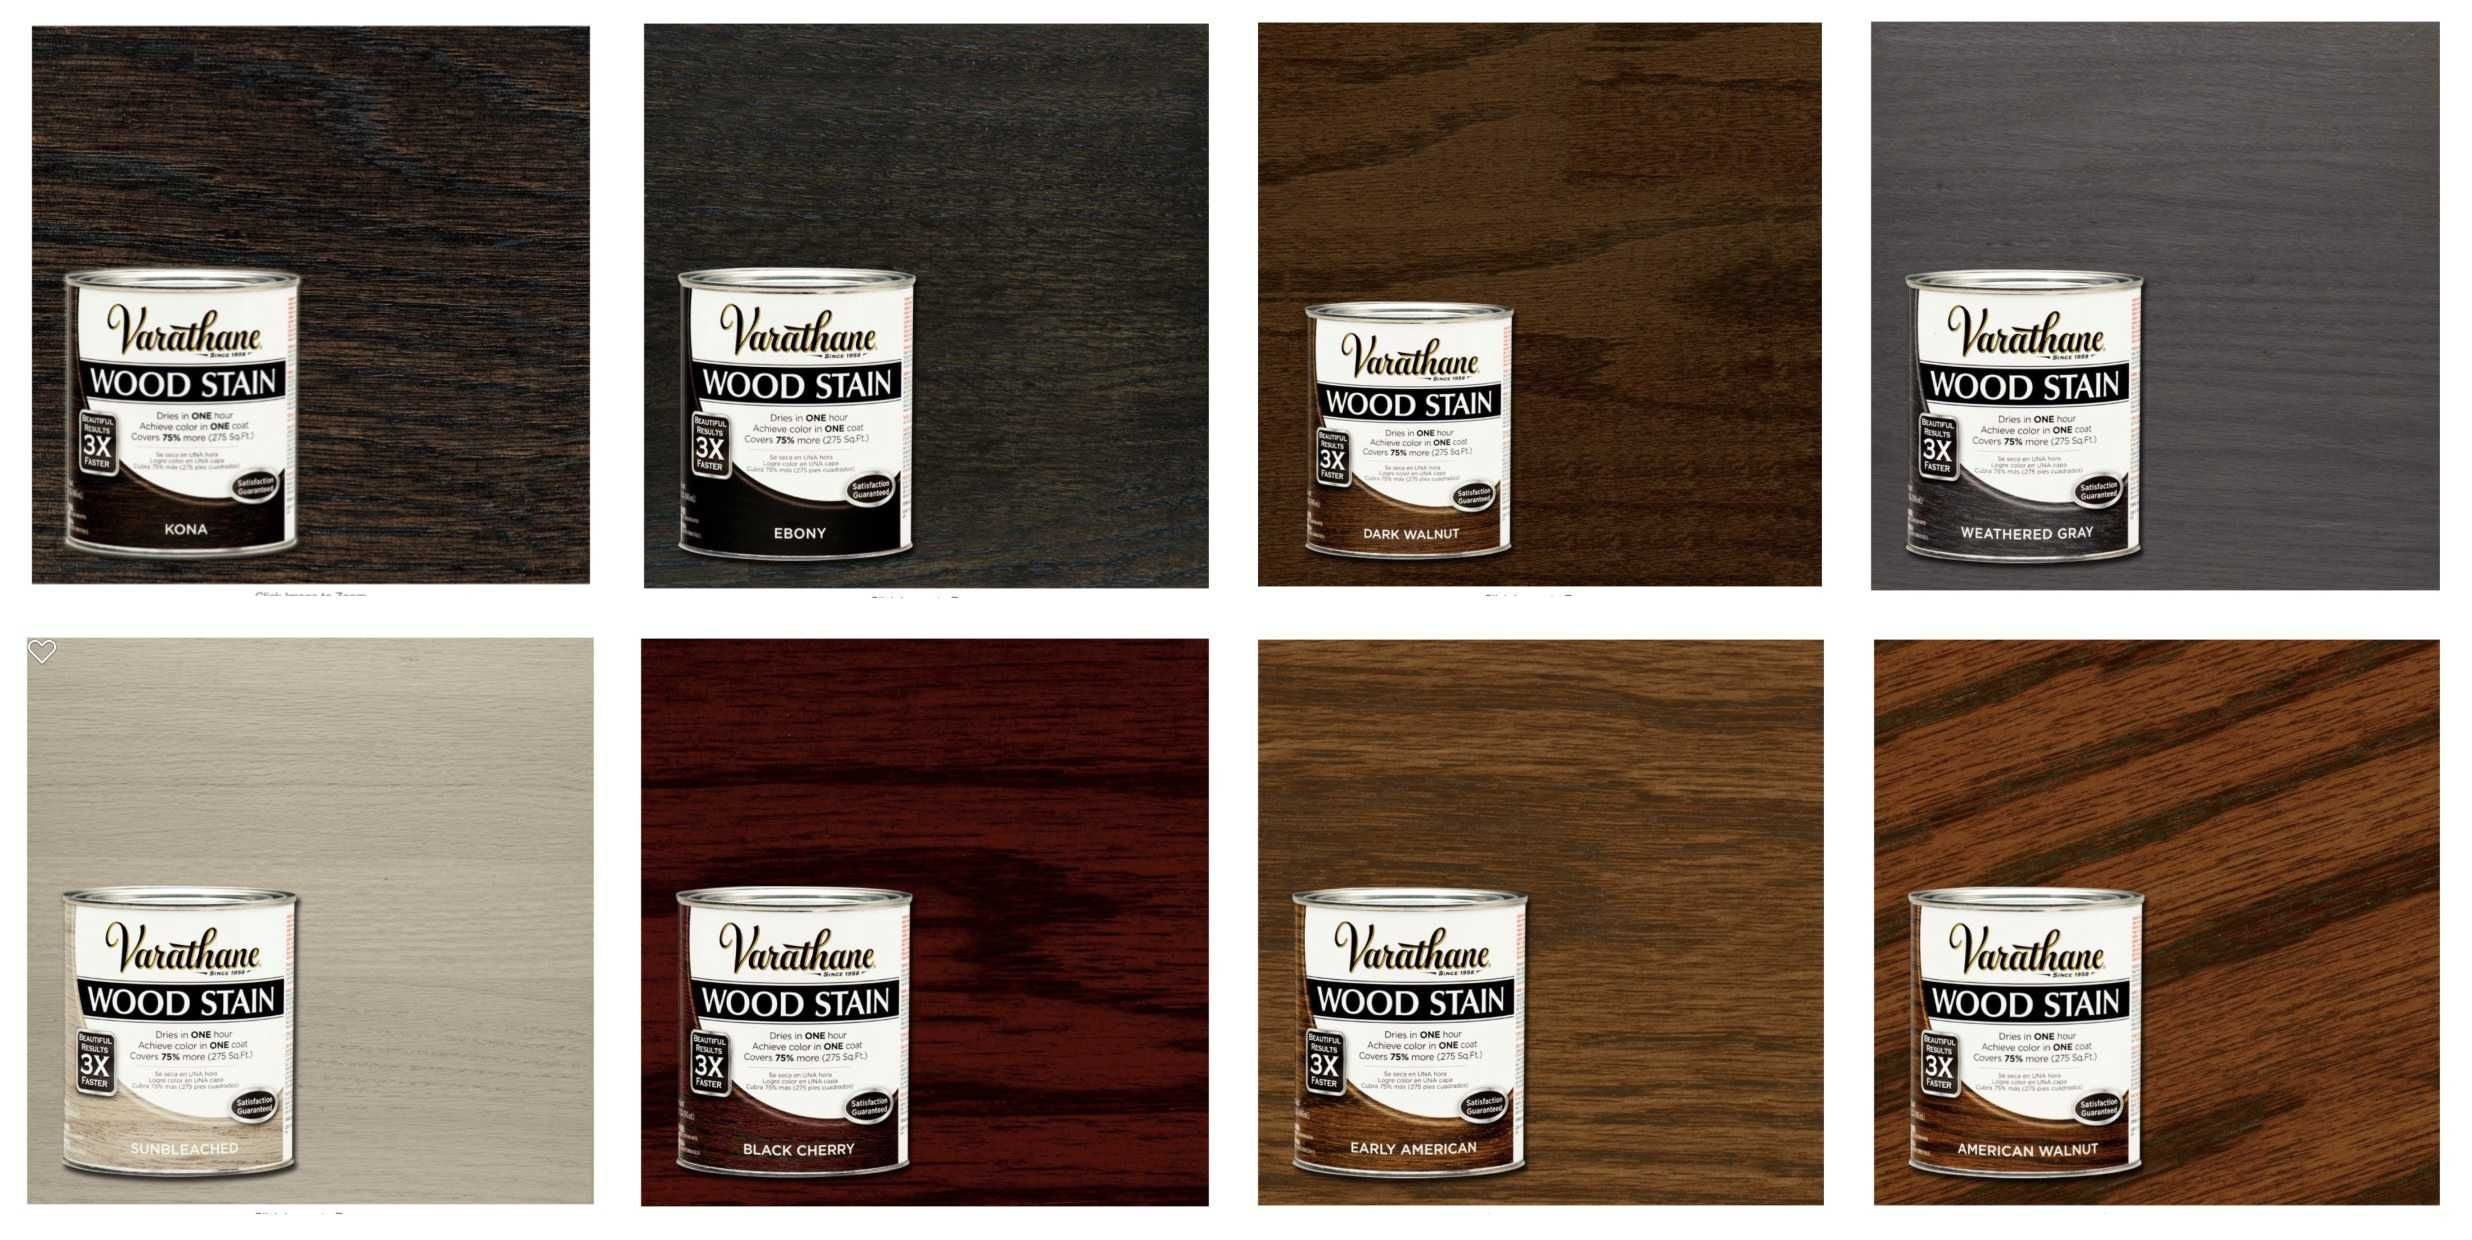 Varthane® Wood Stain Color Chart / Swatch - Hardwood Flooring Colors ...